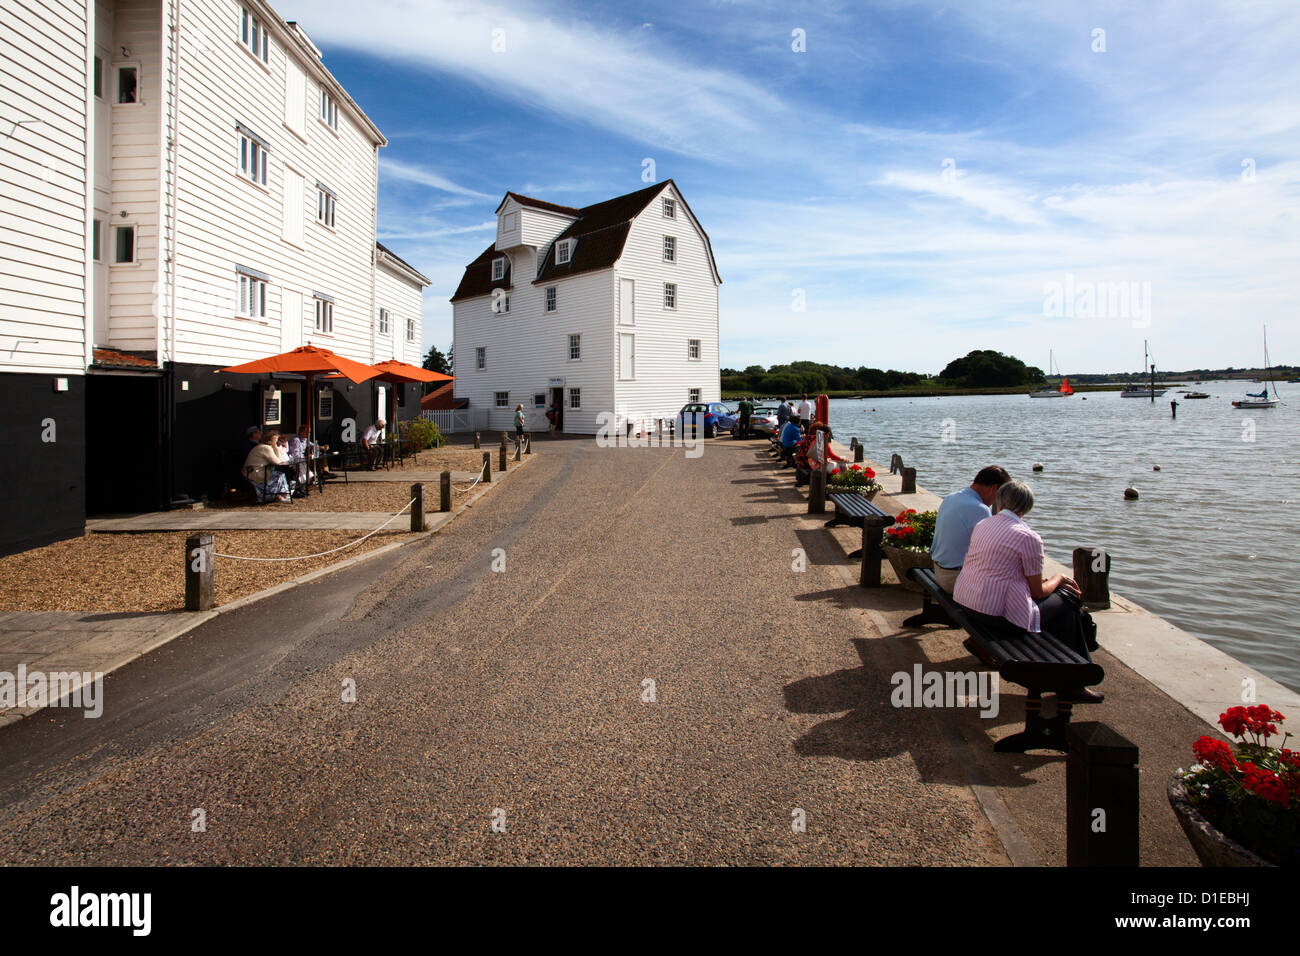 The Tide Mill Living Museum and Quayside at Woodbridge Riverside, Woodbridge, Suffolk, England, United Kingdom, - Stock Image